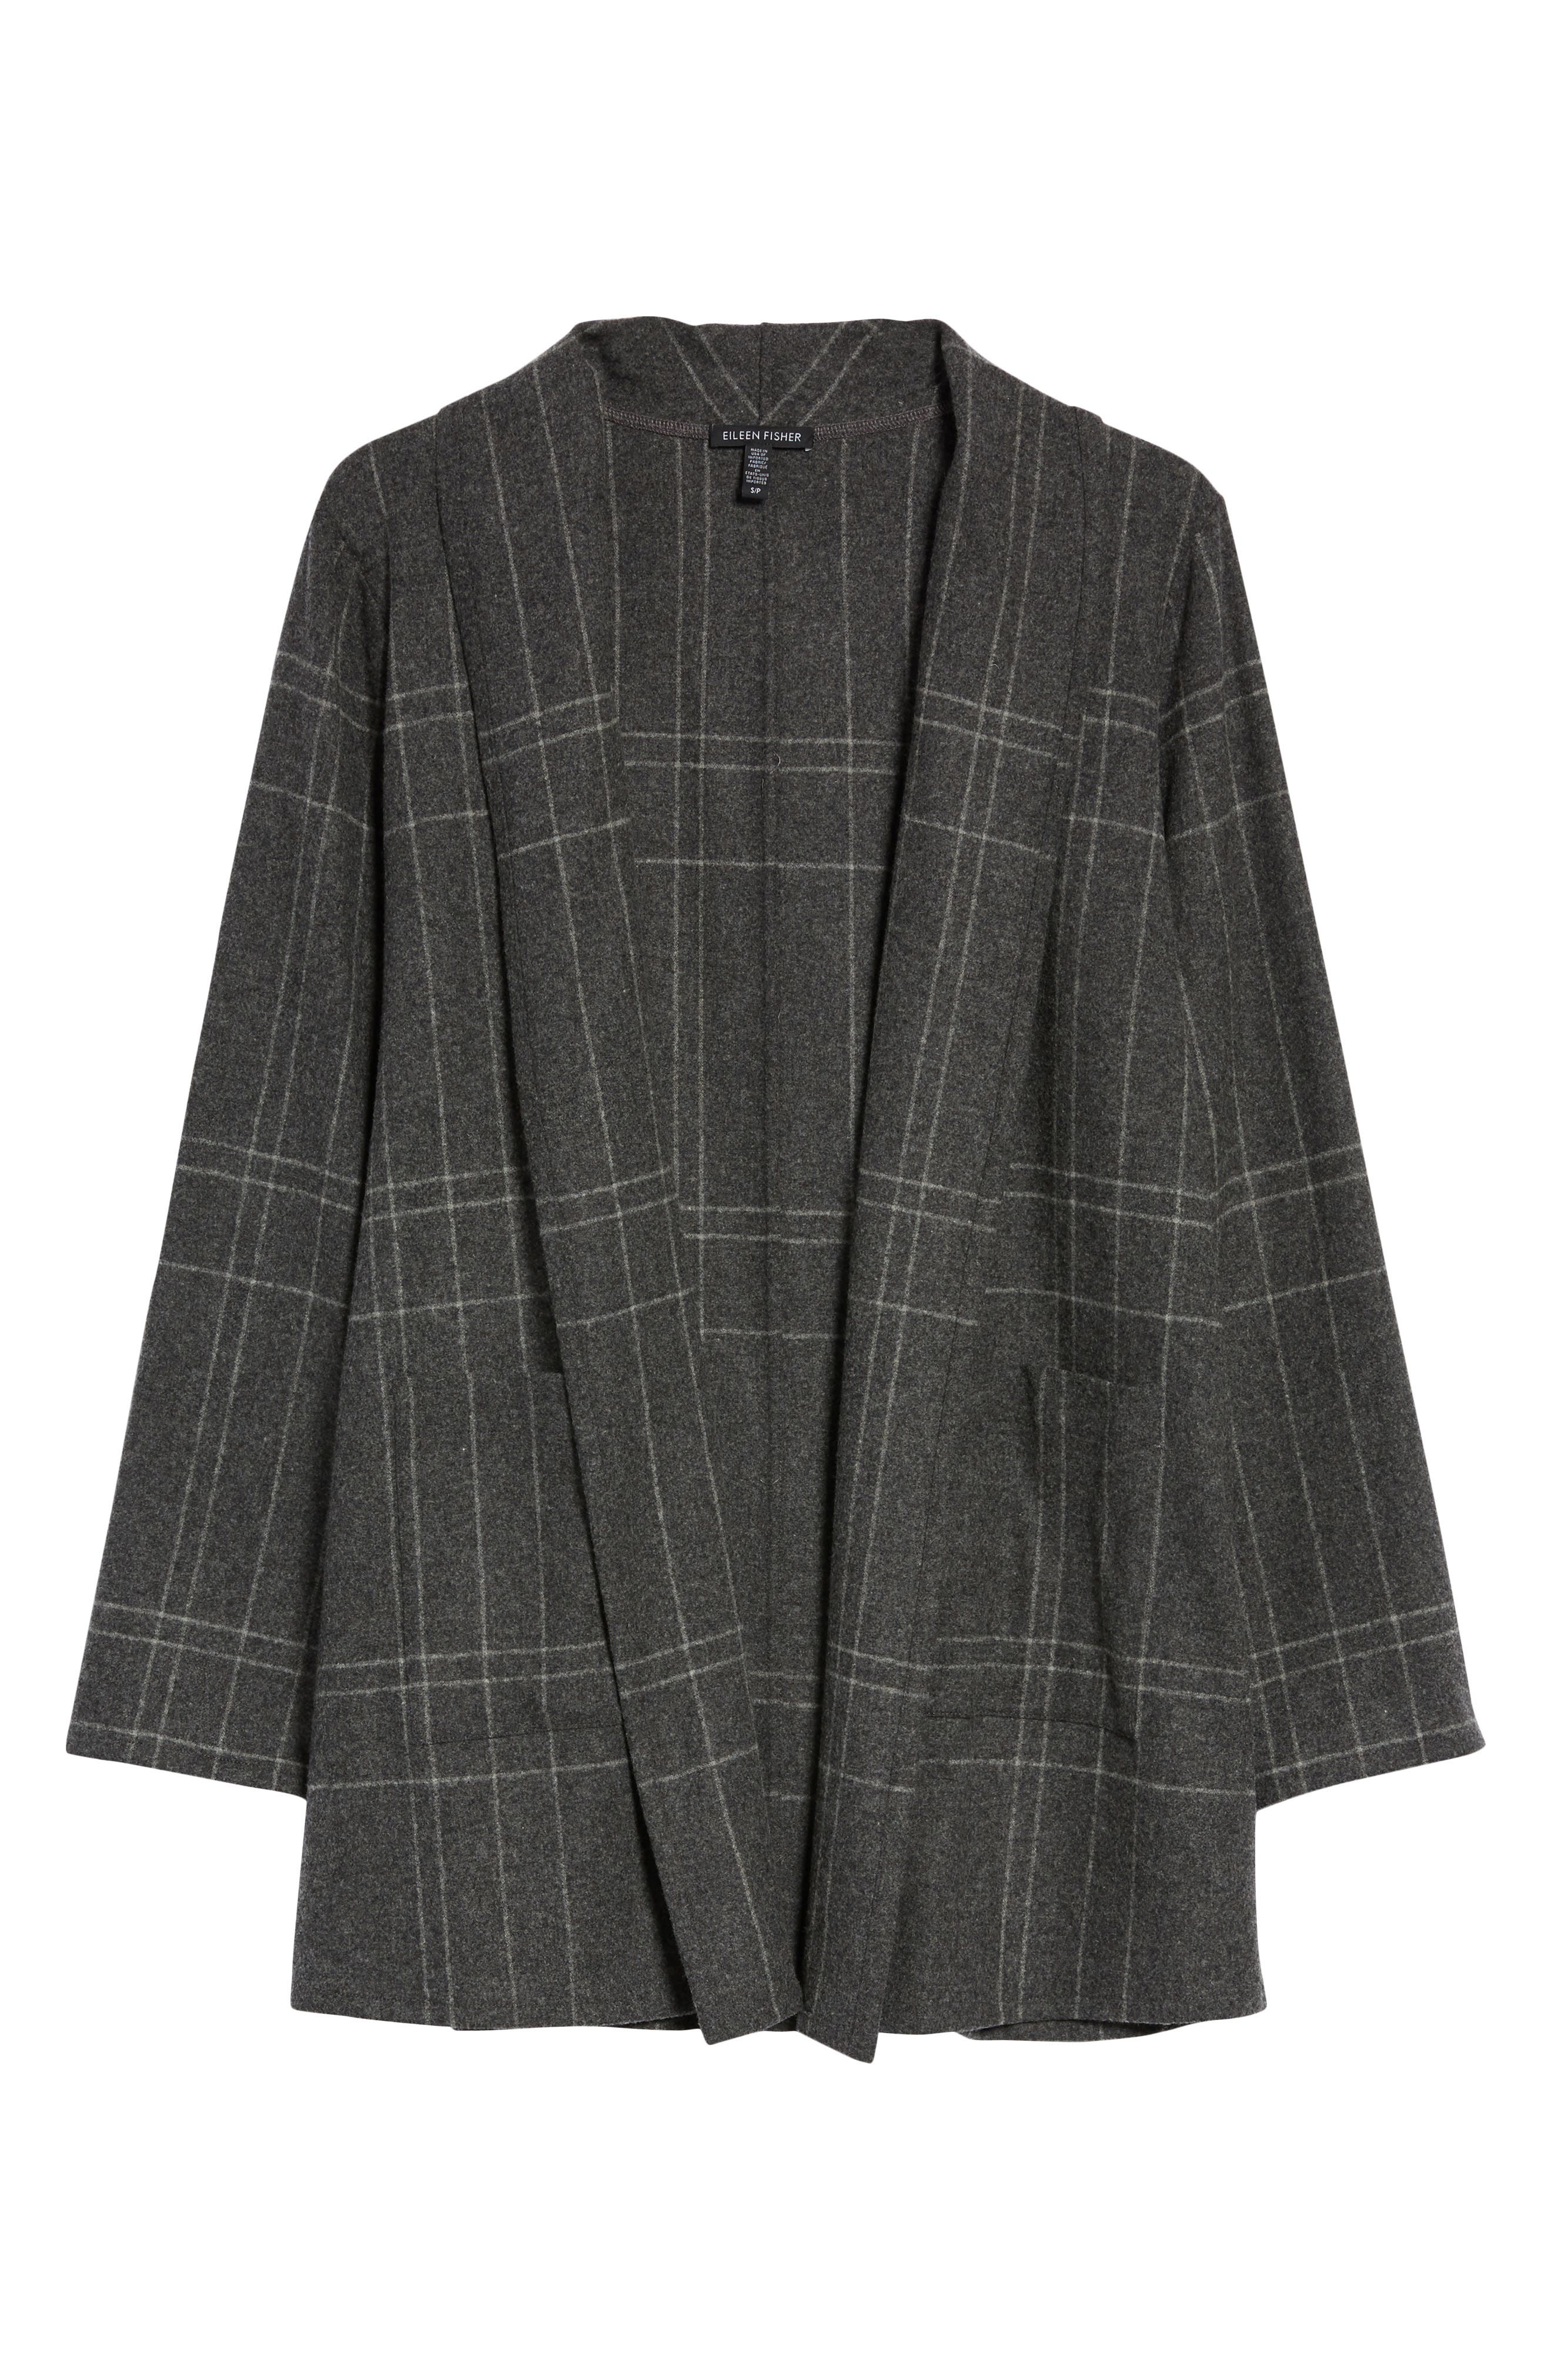 Plaid Kimono Jacket,                             Alternate thumbnail 6, color,                             Dark Ash